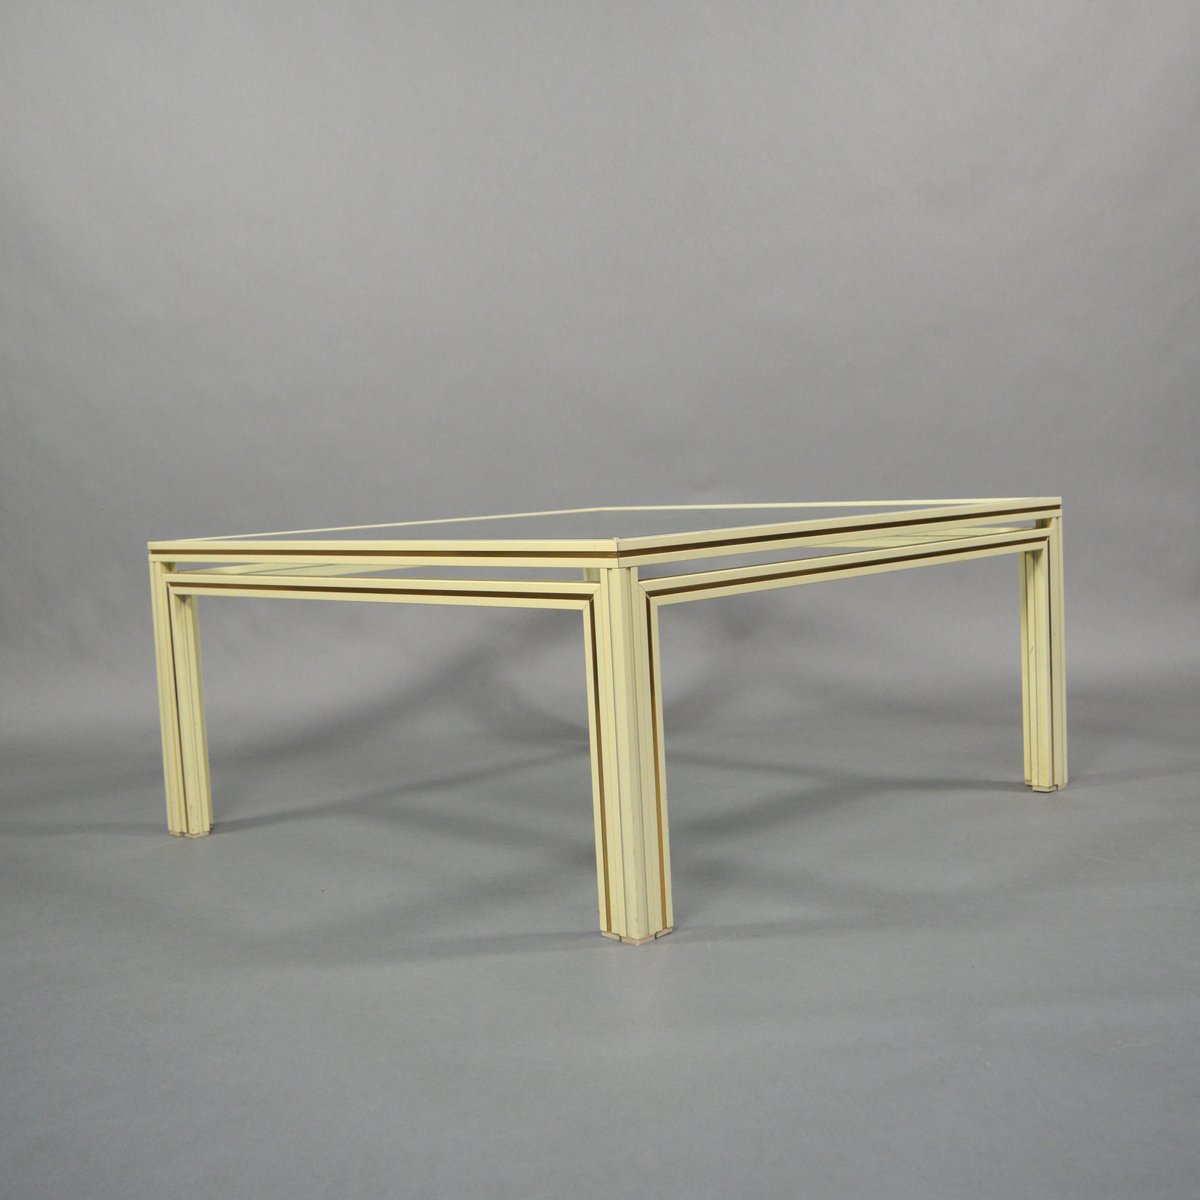 French coffee table by pierre vandel 1970s for sale at pamono french coffee table by pierre vandel 1970s geotapseo Choice Image